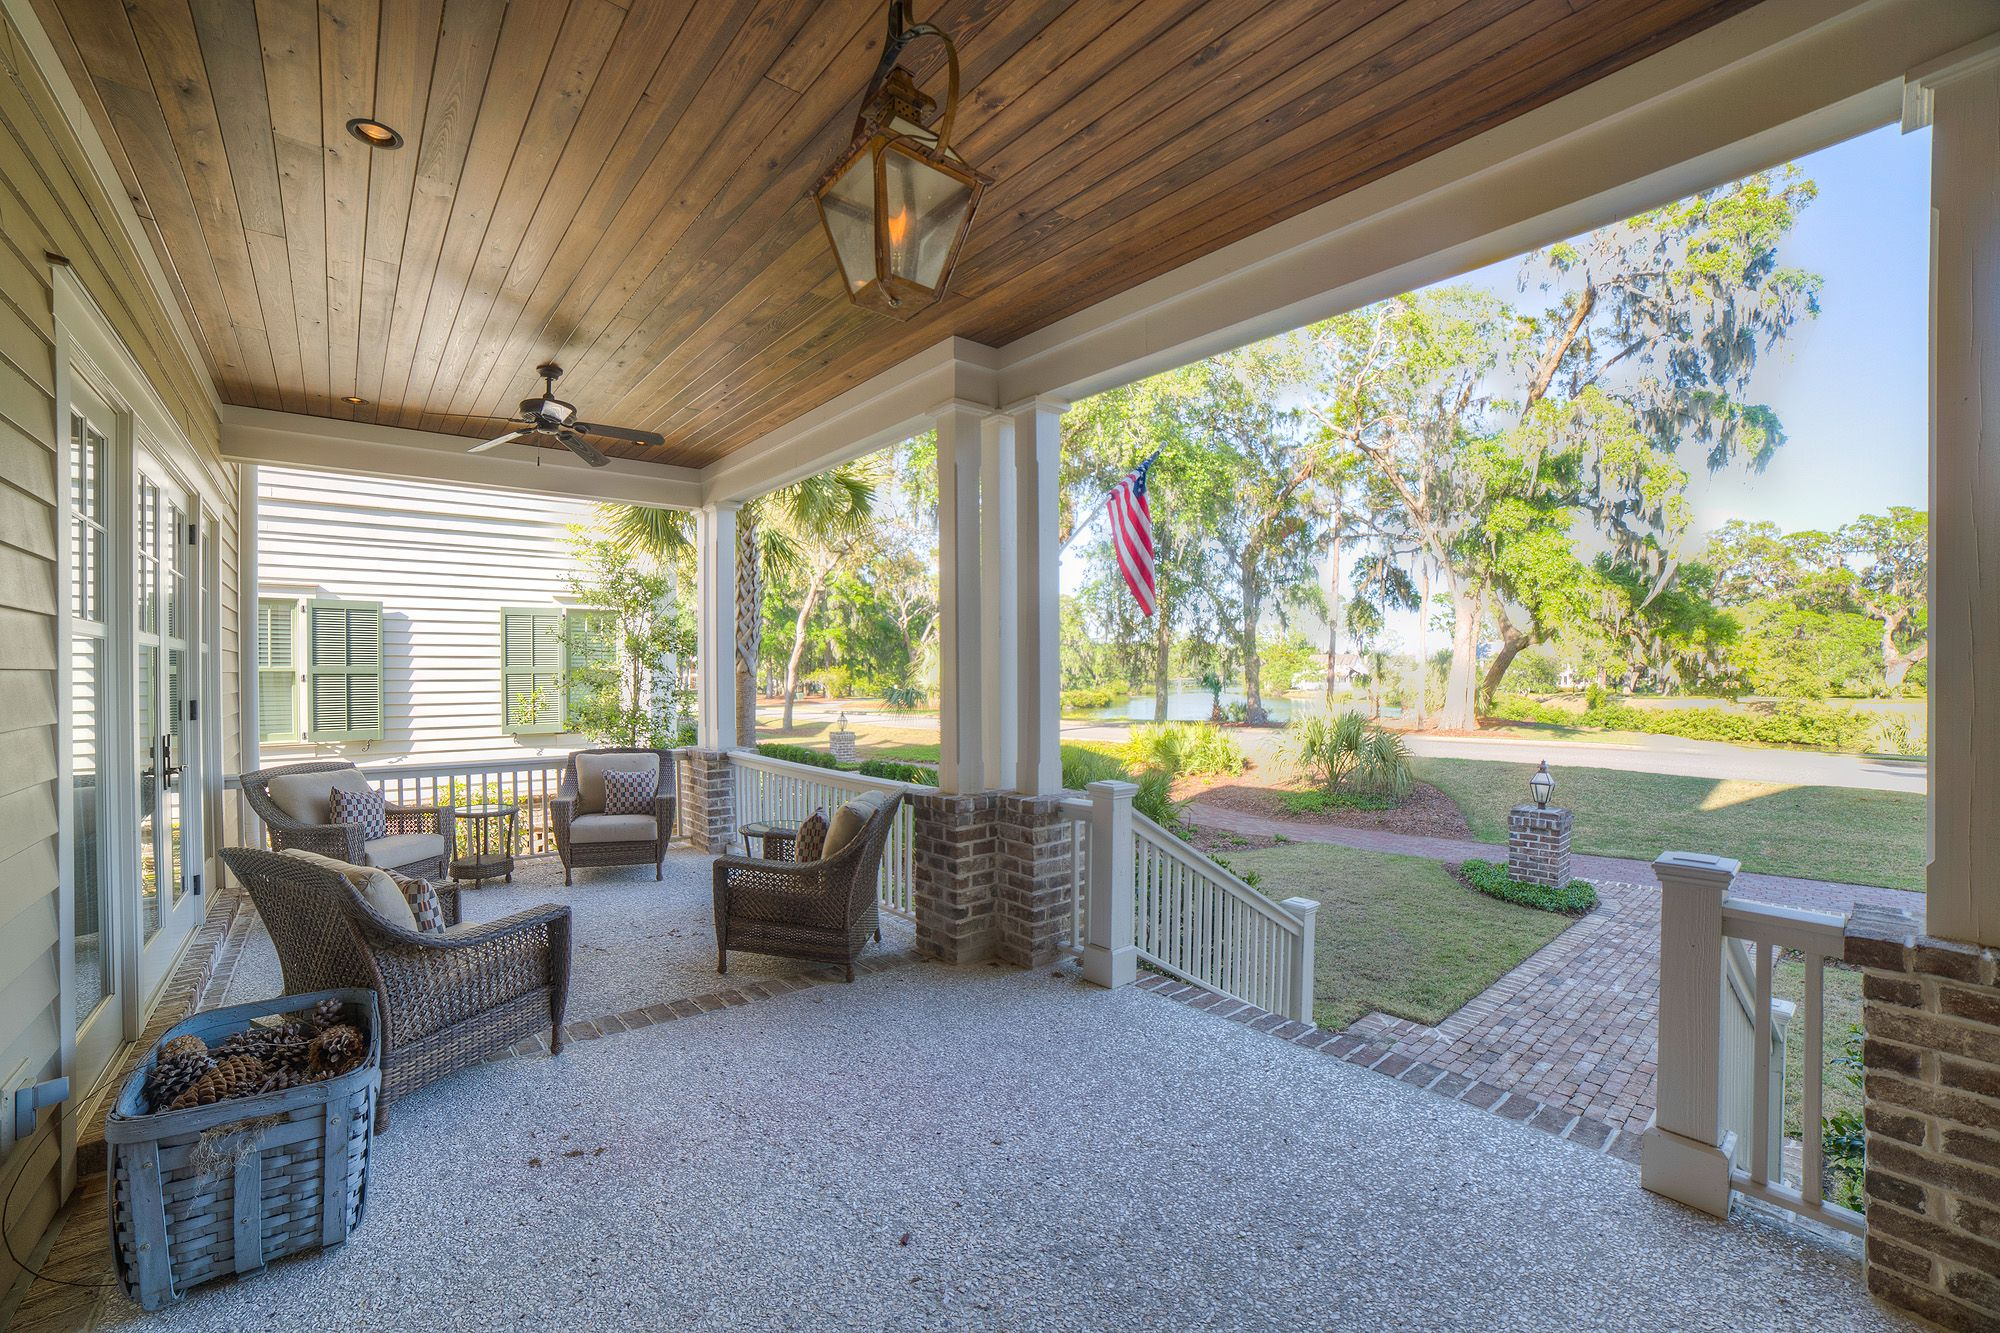 Captivating Spacious Front Porch | Lowcountry Living | Outdoor Seating Inspiration | Southern  Style | Vacation Real